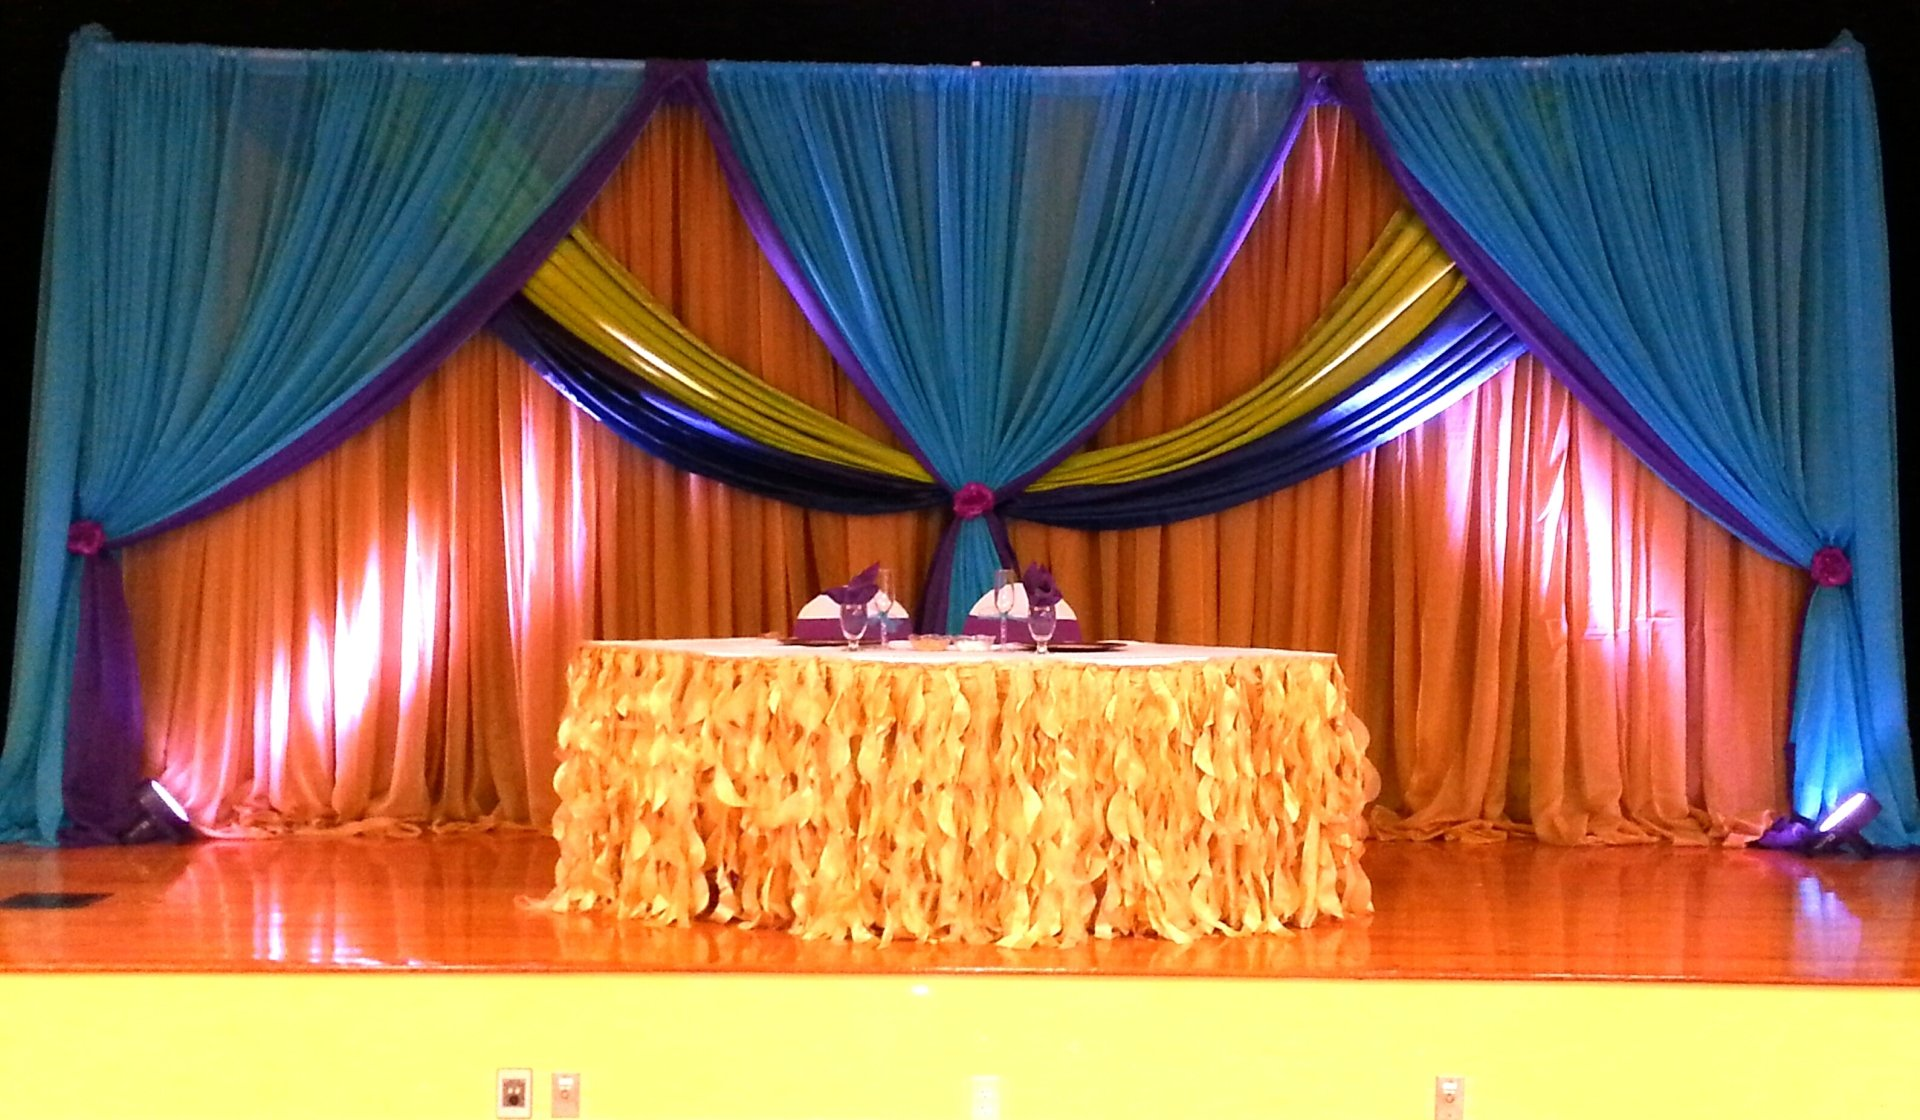 MLG Event Draping and Designs image 3